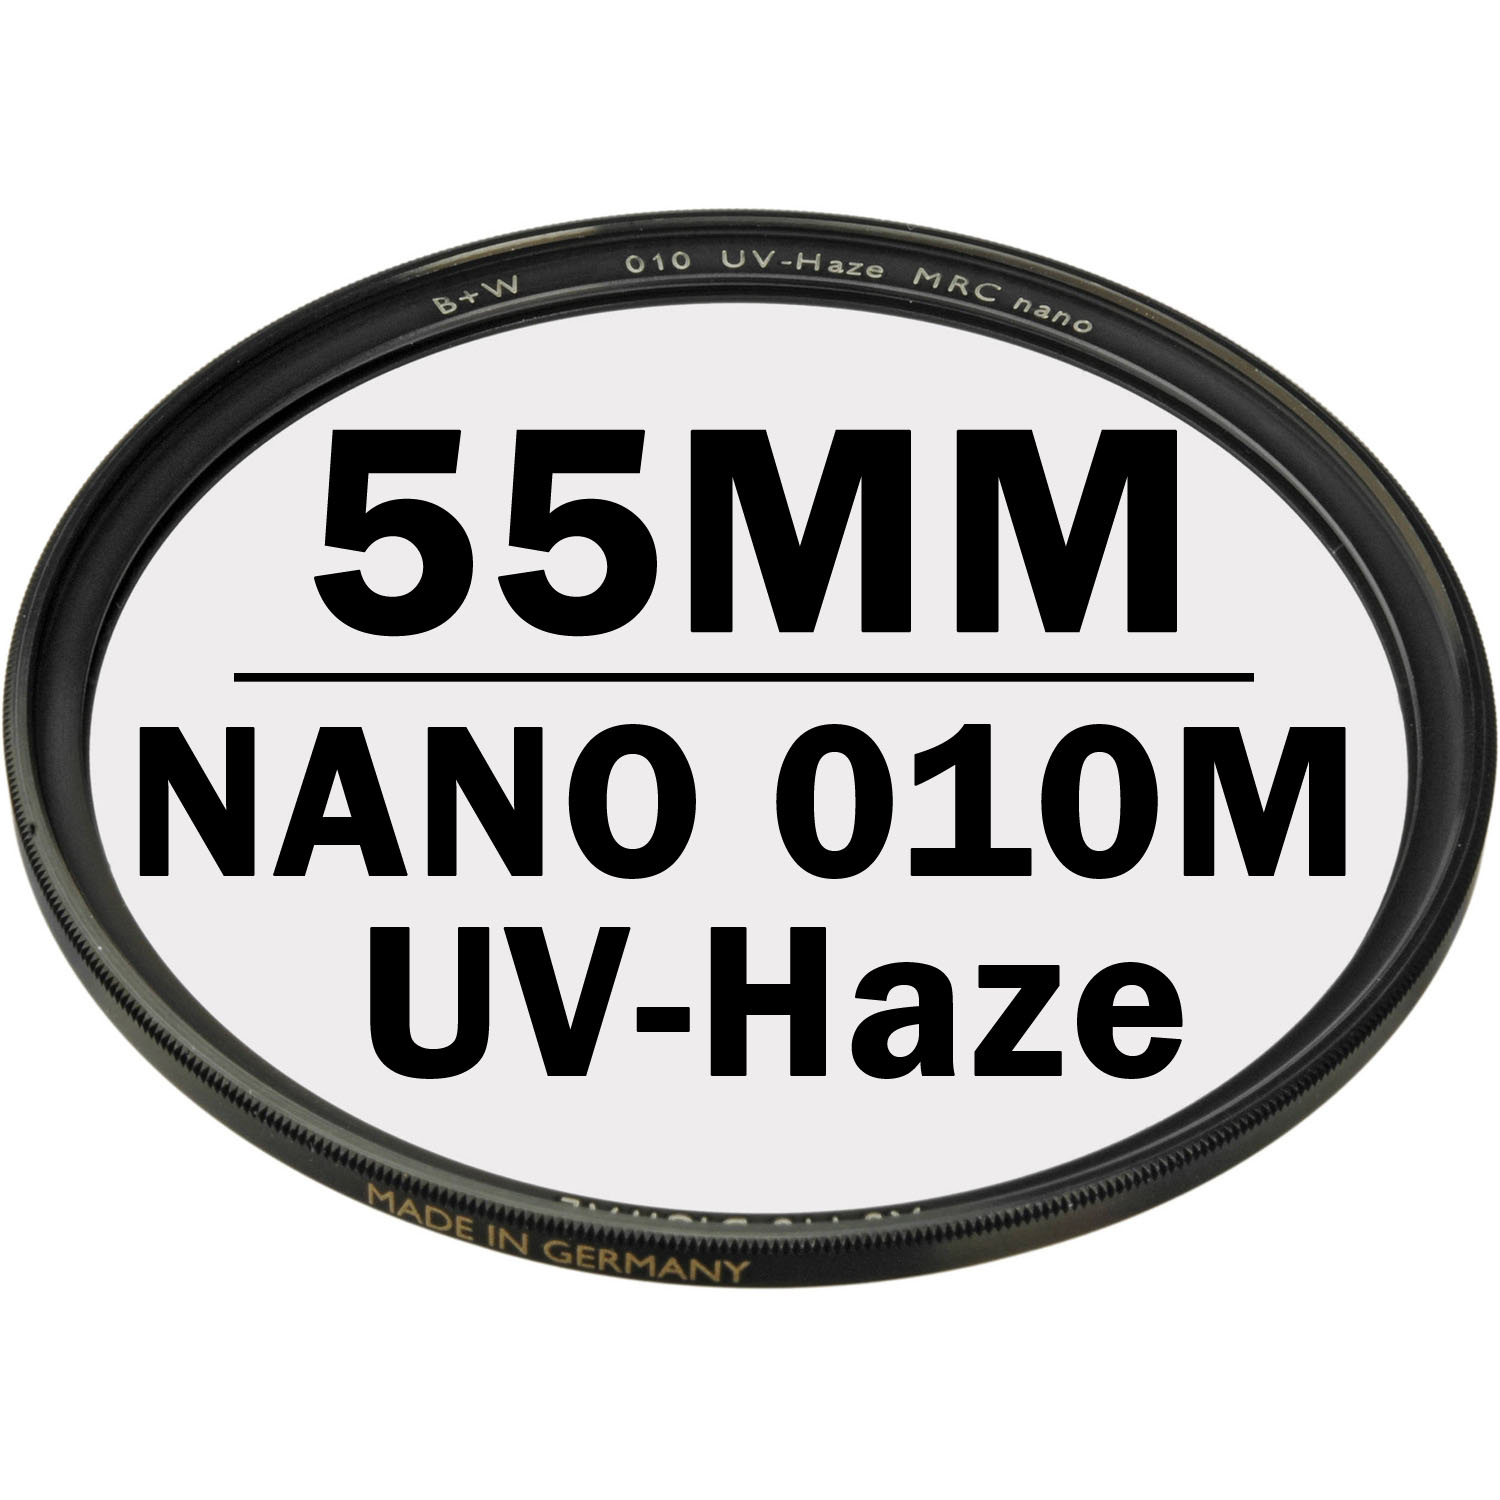 B+W 55 mm XS PRO UV Haze 010M MRC NANO Digital Filter